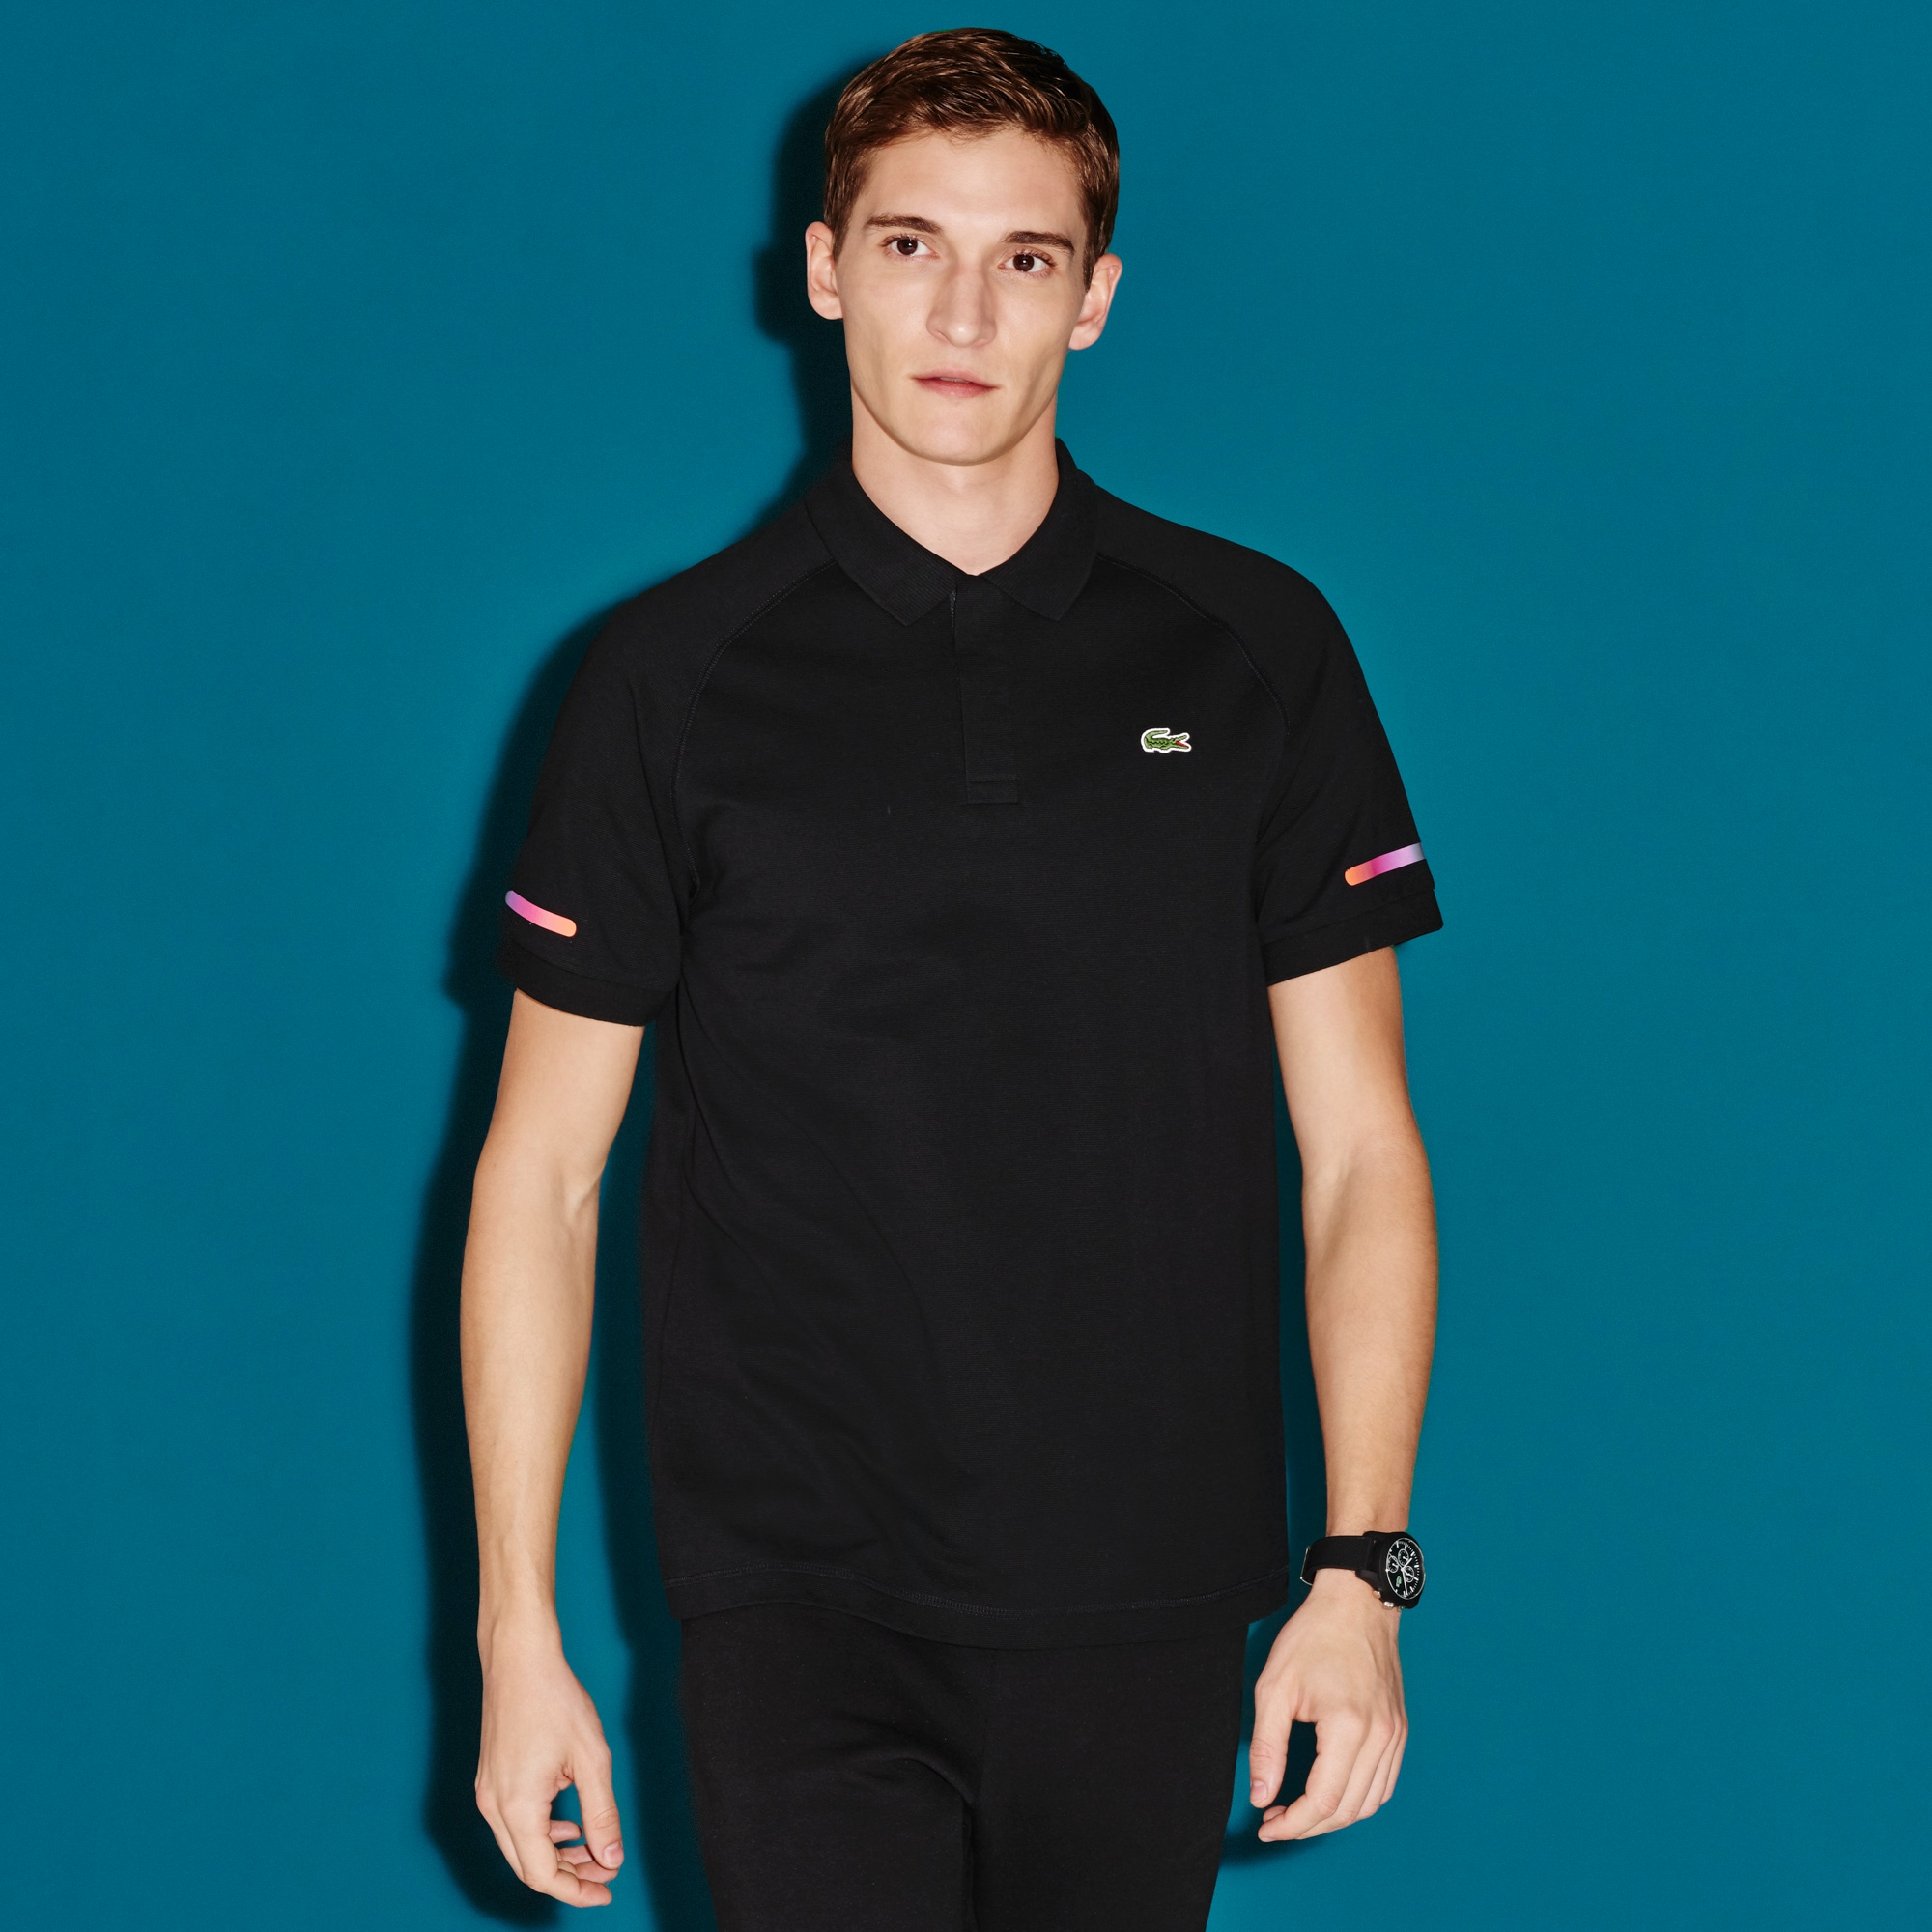 Men's SPORT Lightweight Knit Tennis Polo